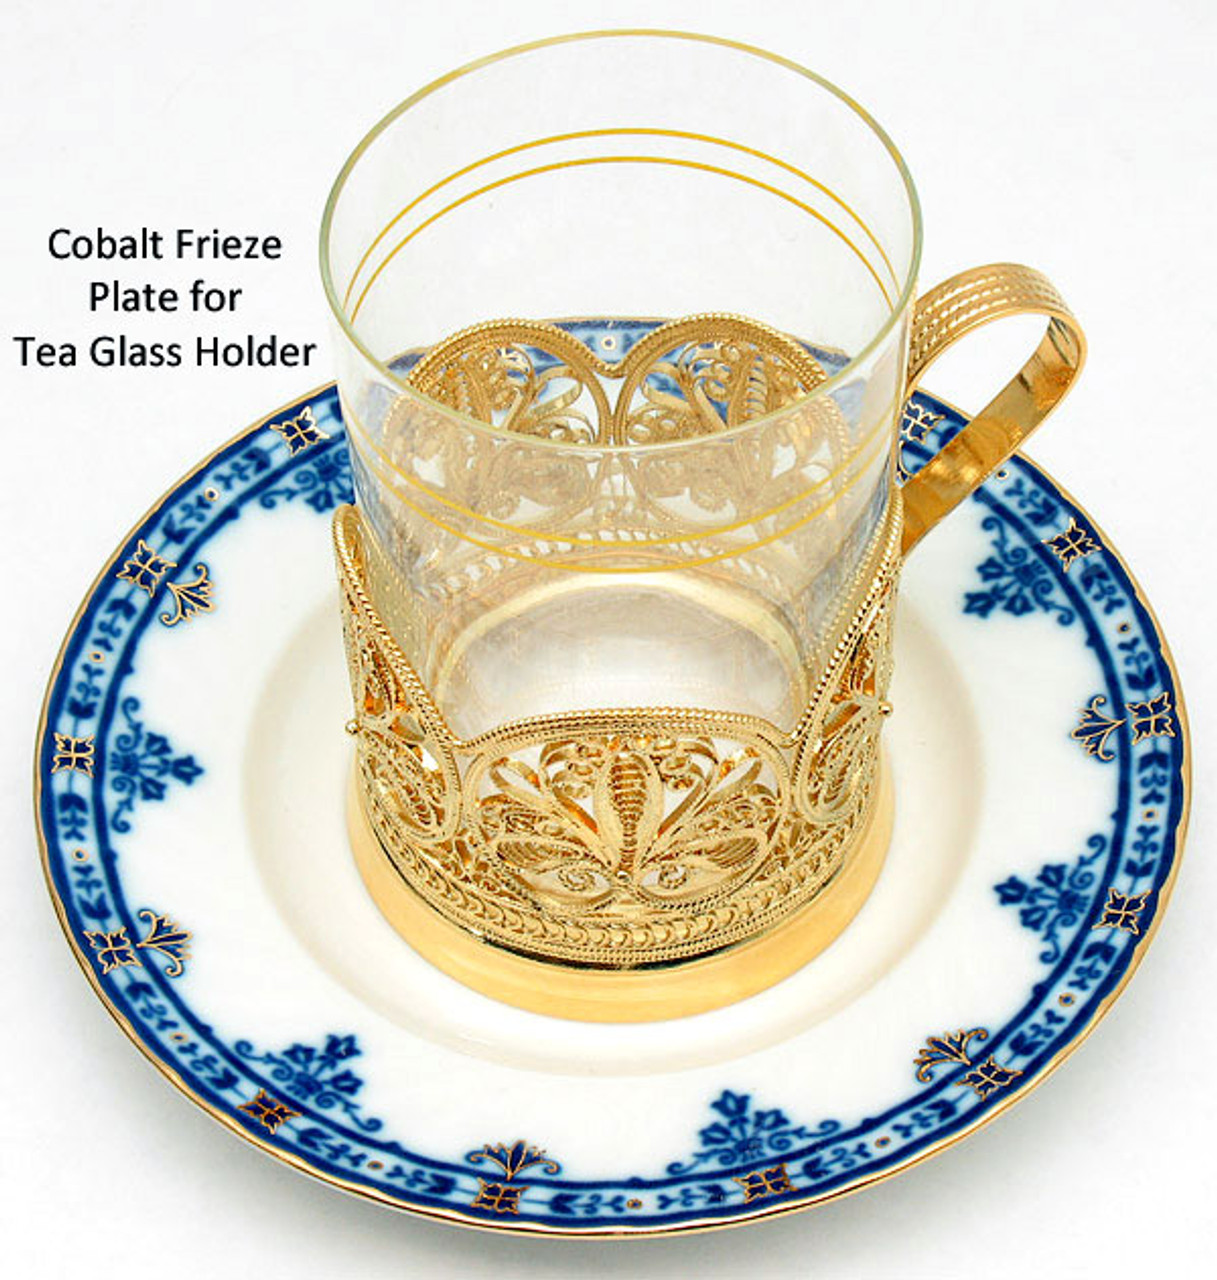 Cobalt Frieze Plate for Tea Glass Holder